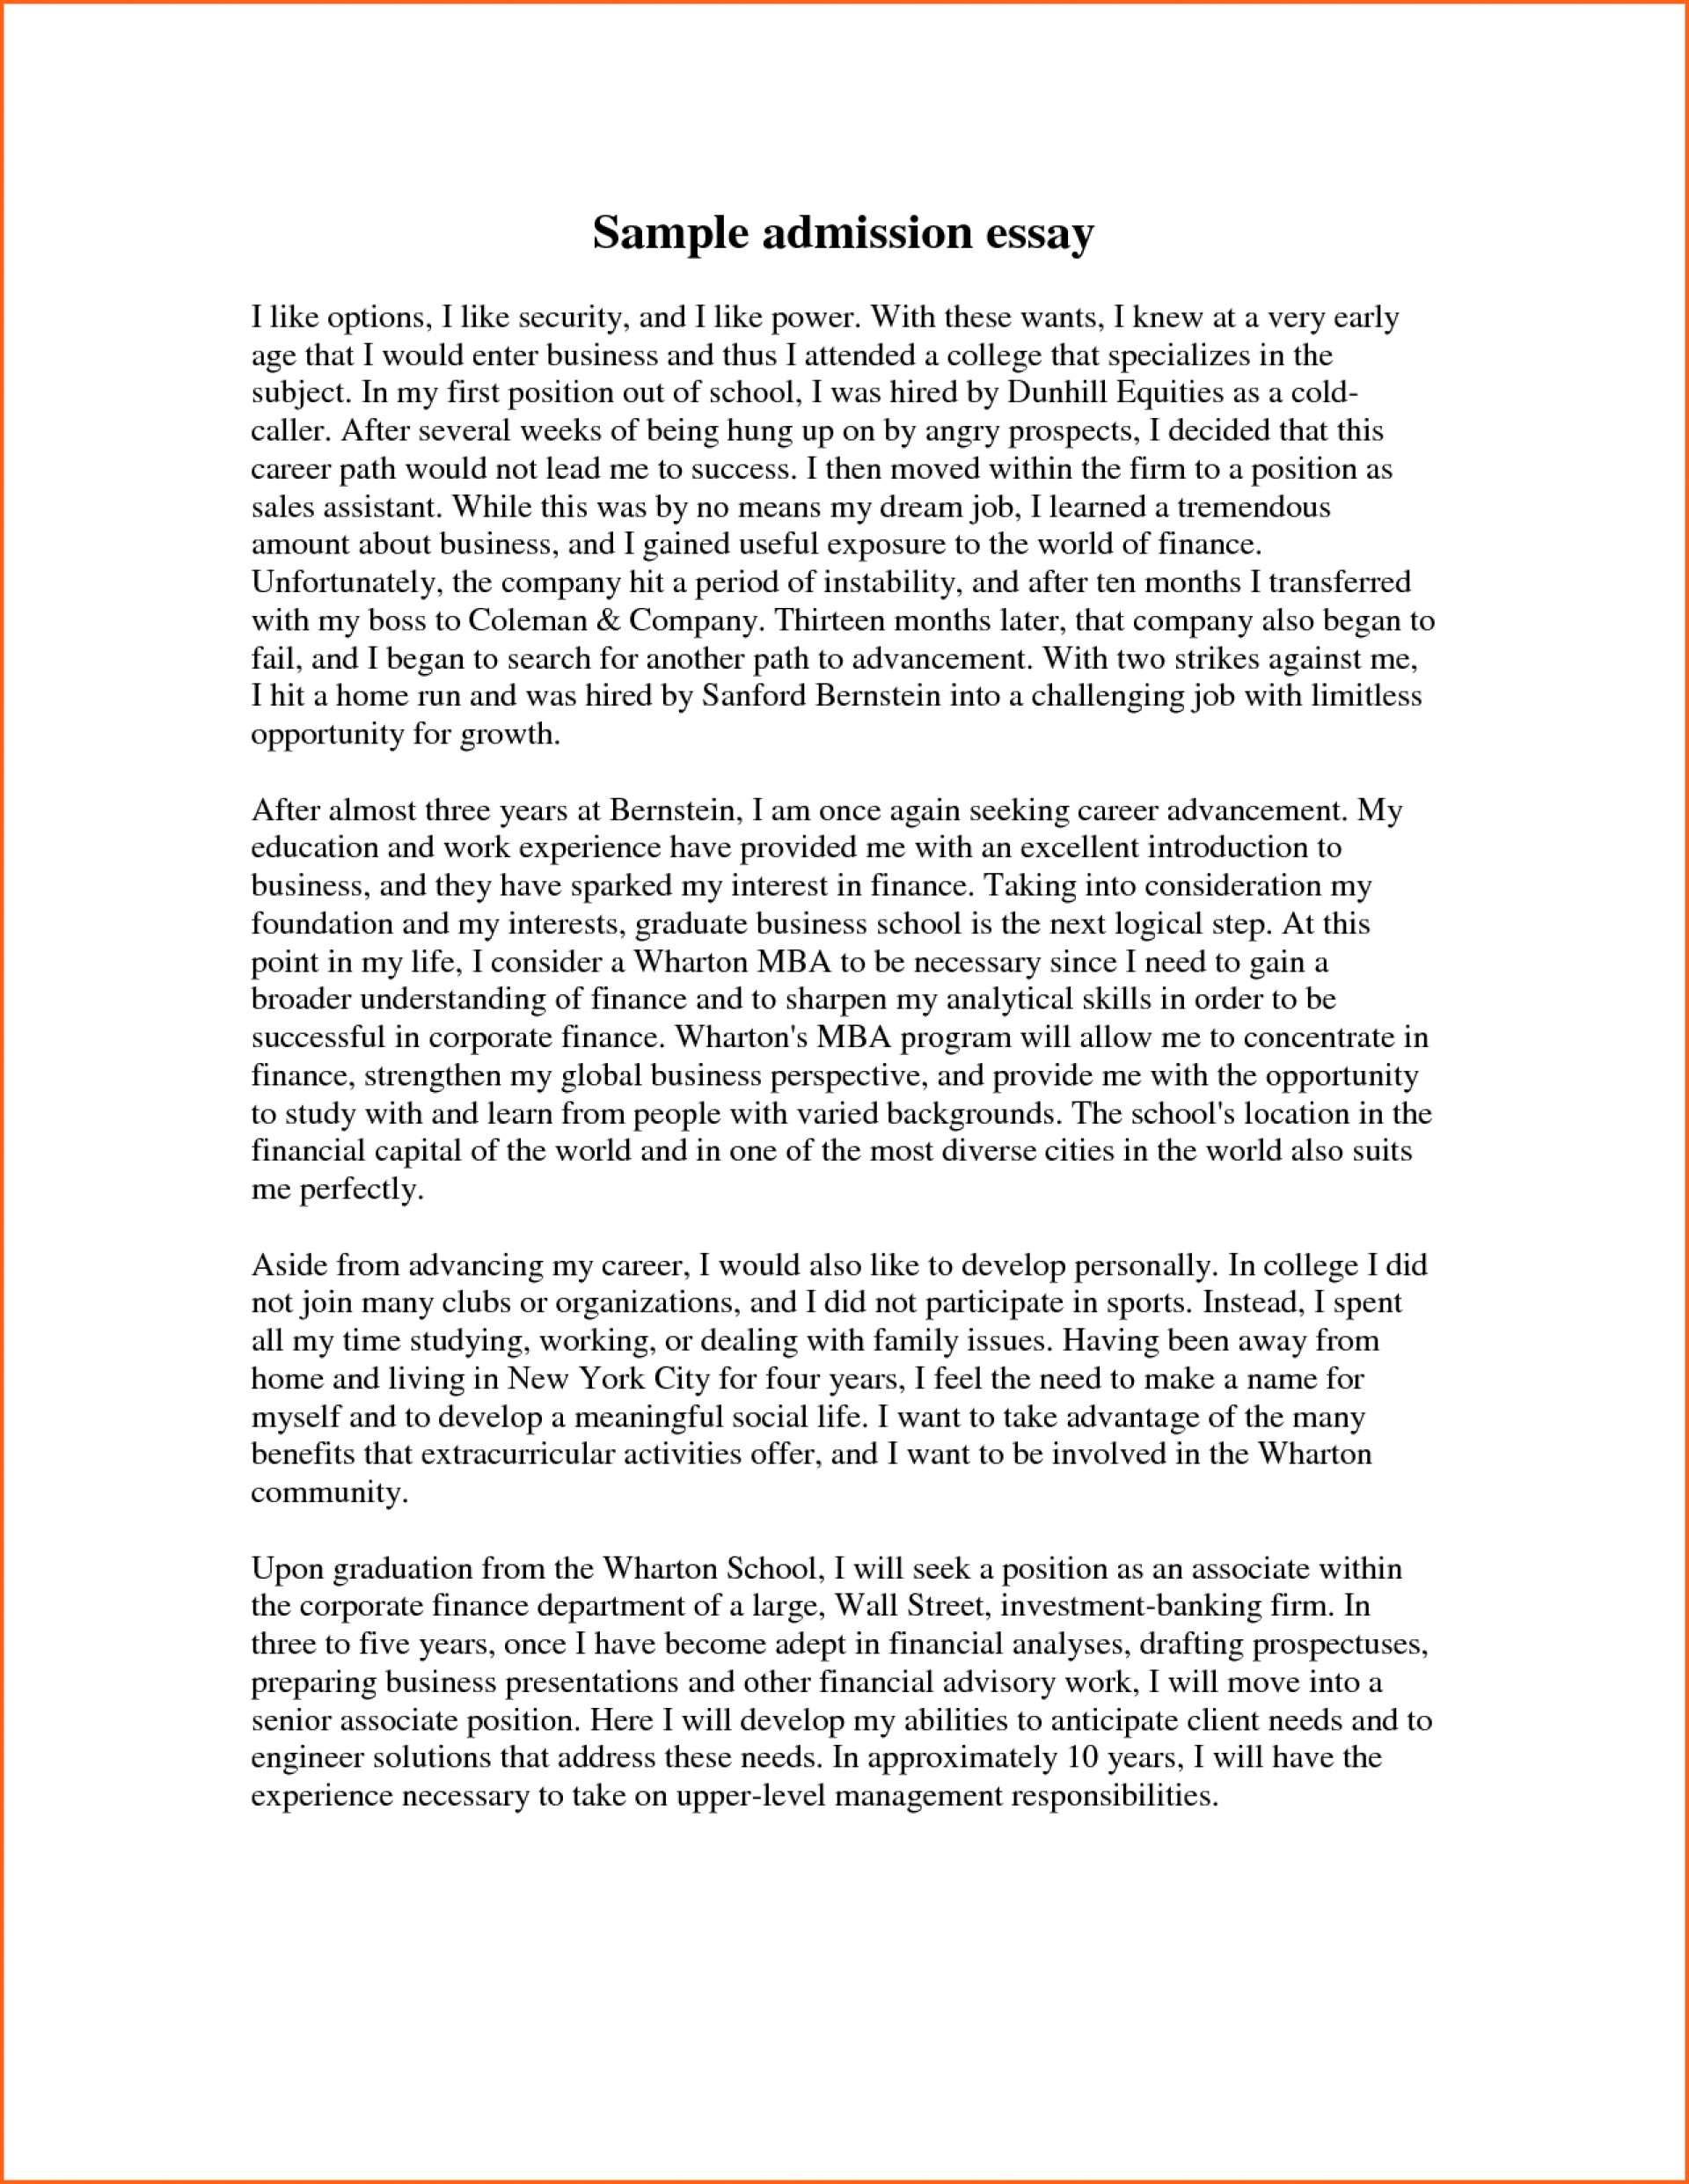 012 Essay Example College Application Examples Excellent Samples For Students Ielts Pdf Template 1920